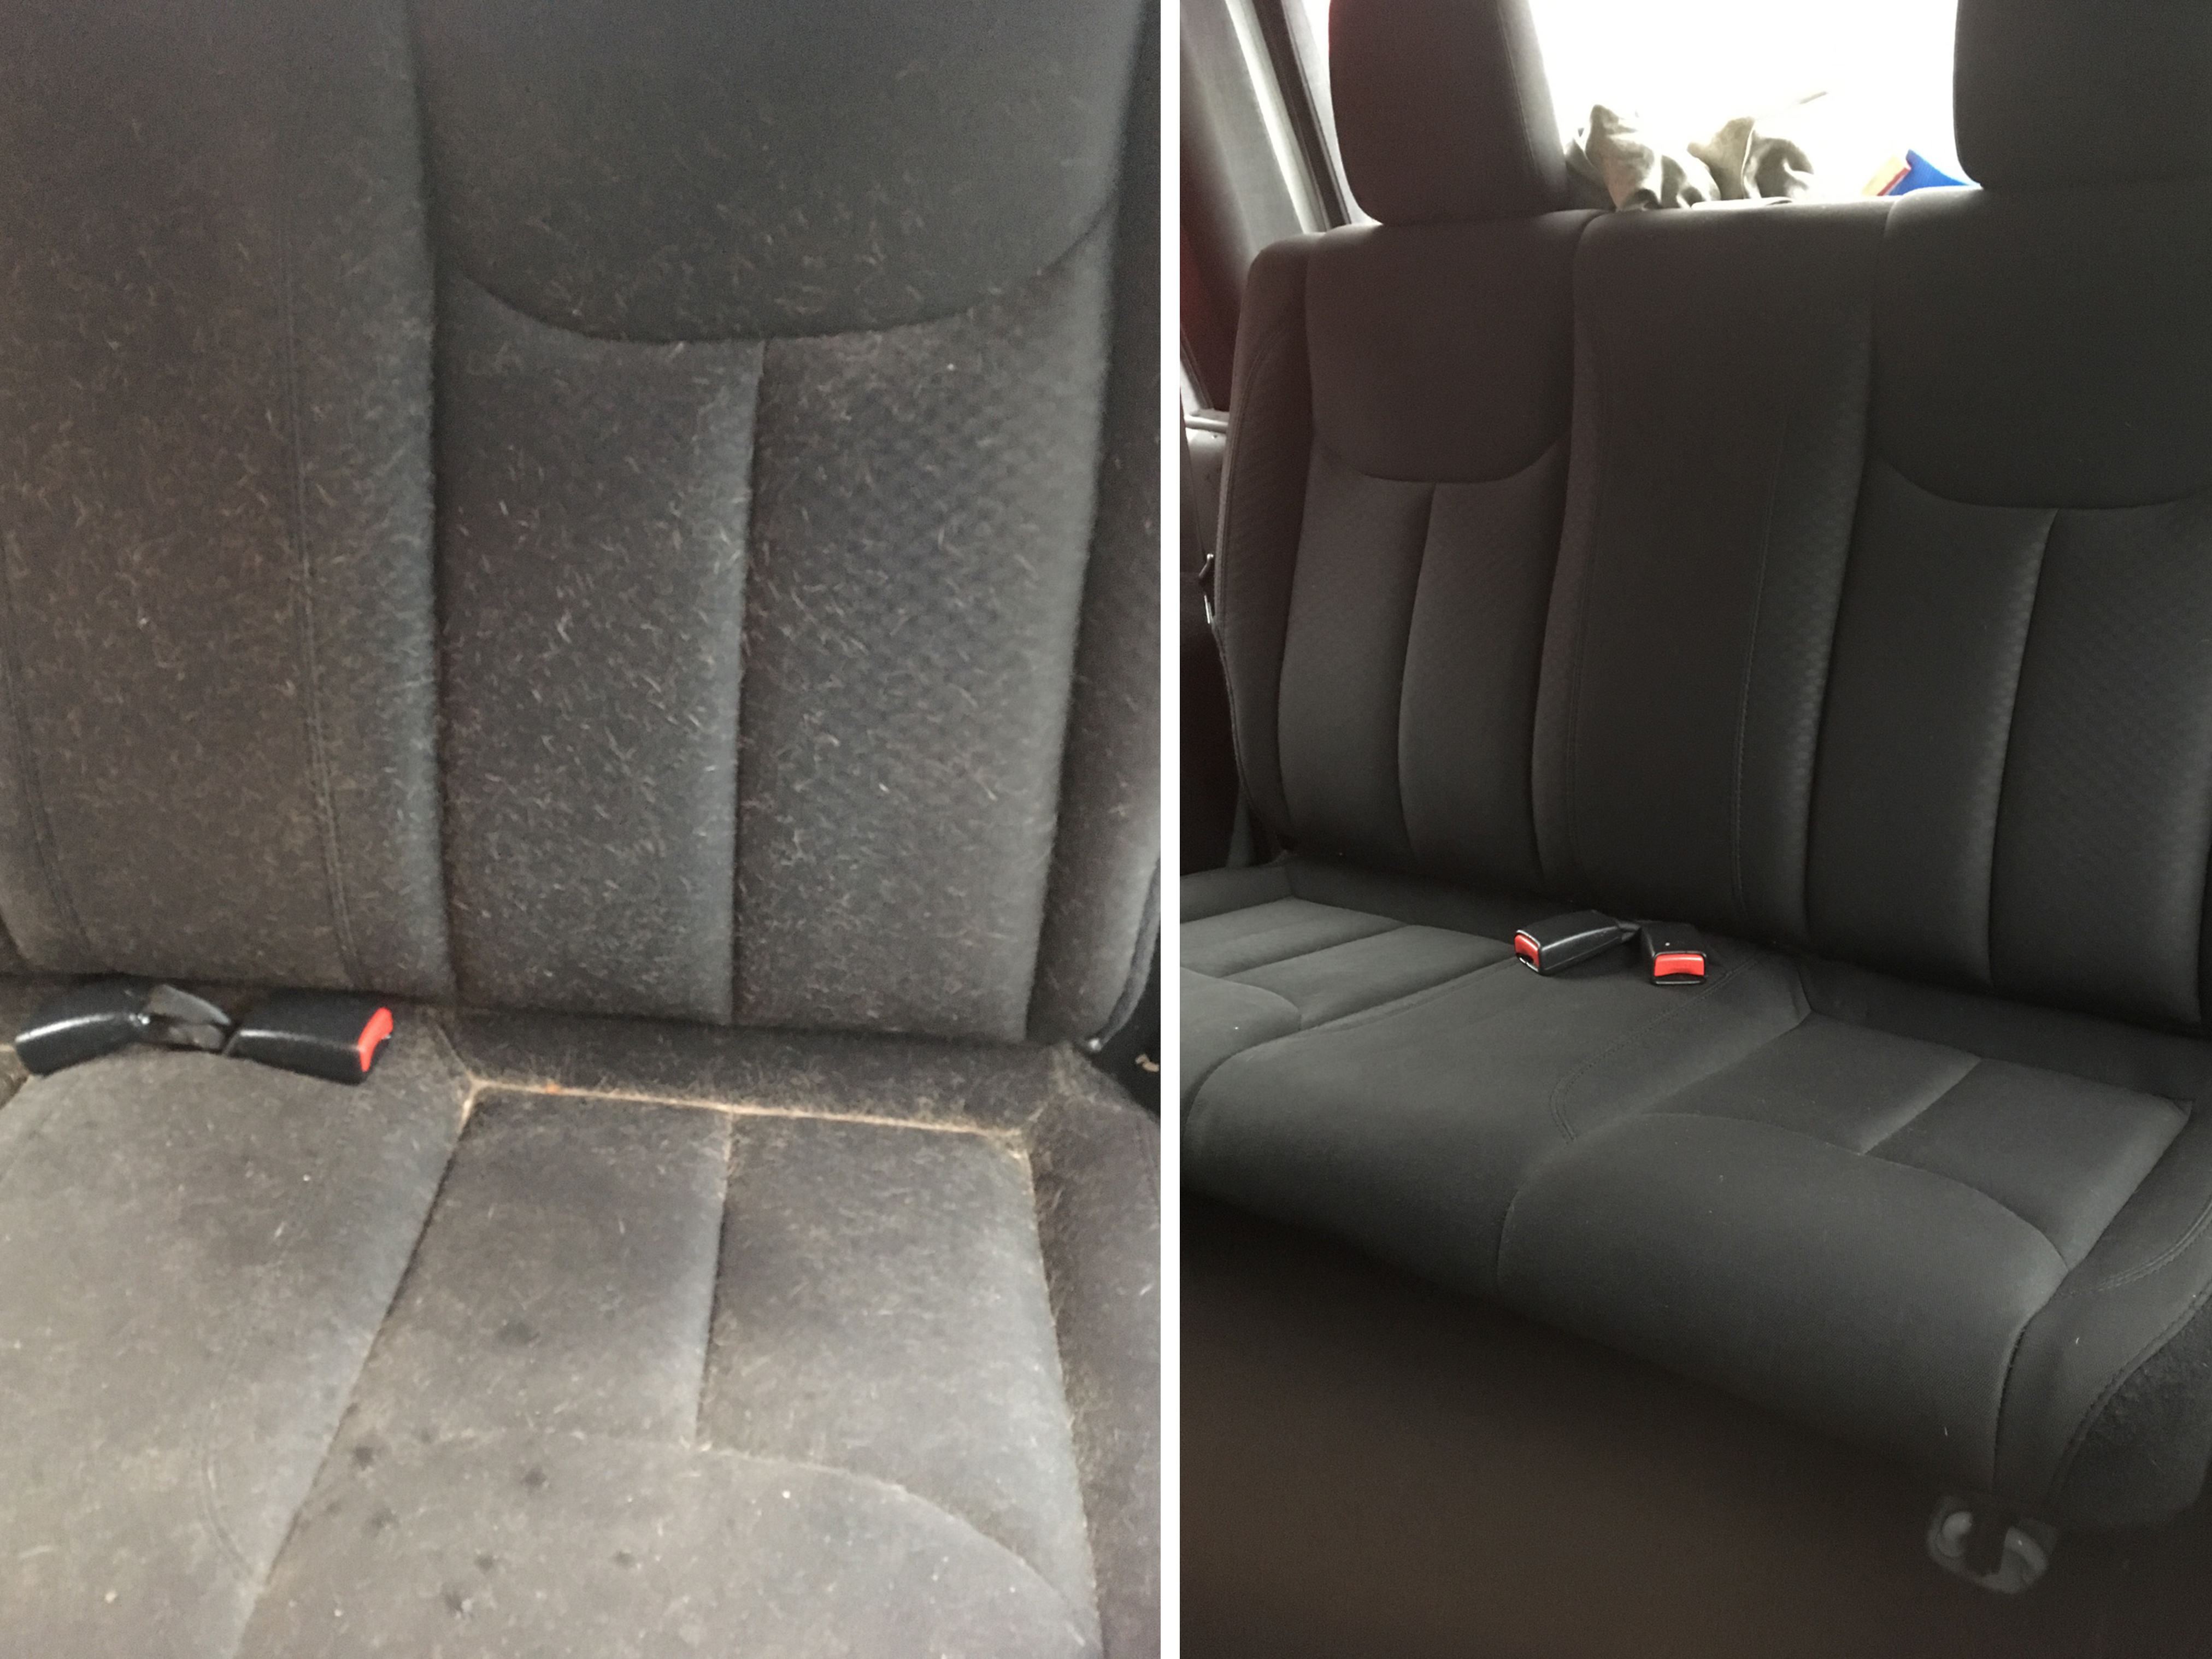 Clifton Nj Auto Upholstery Cleaning Clifton Nj Auto Upholstery